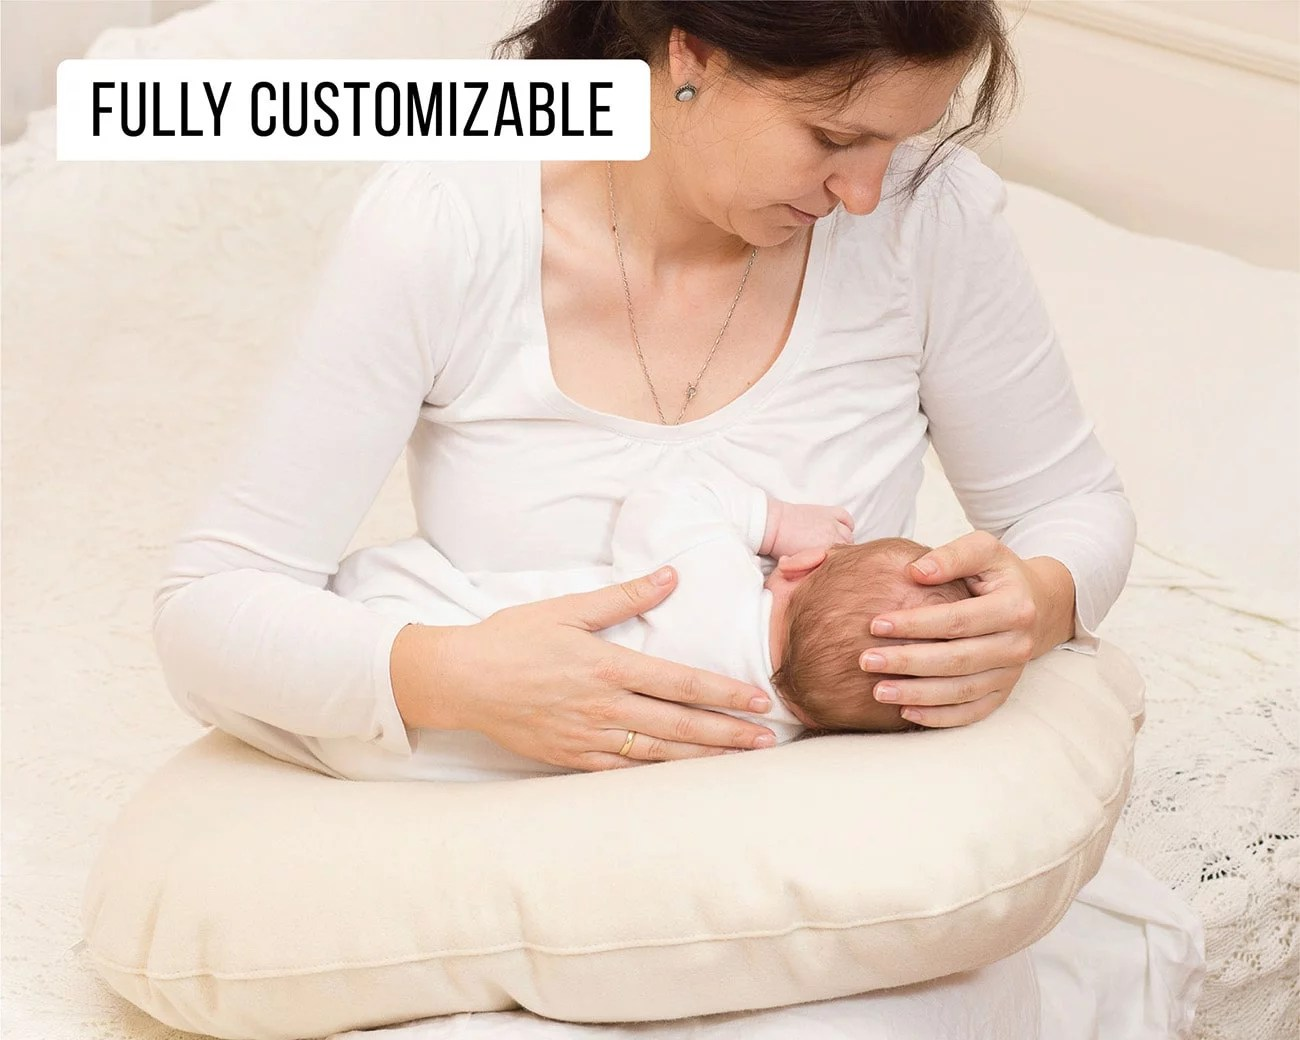 wool nursing pillow boppy size with removable cover